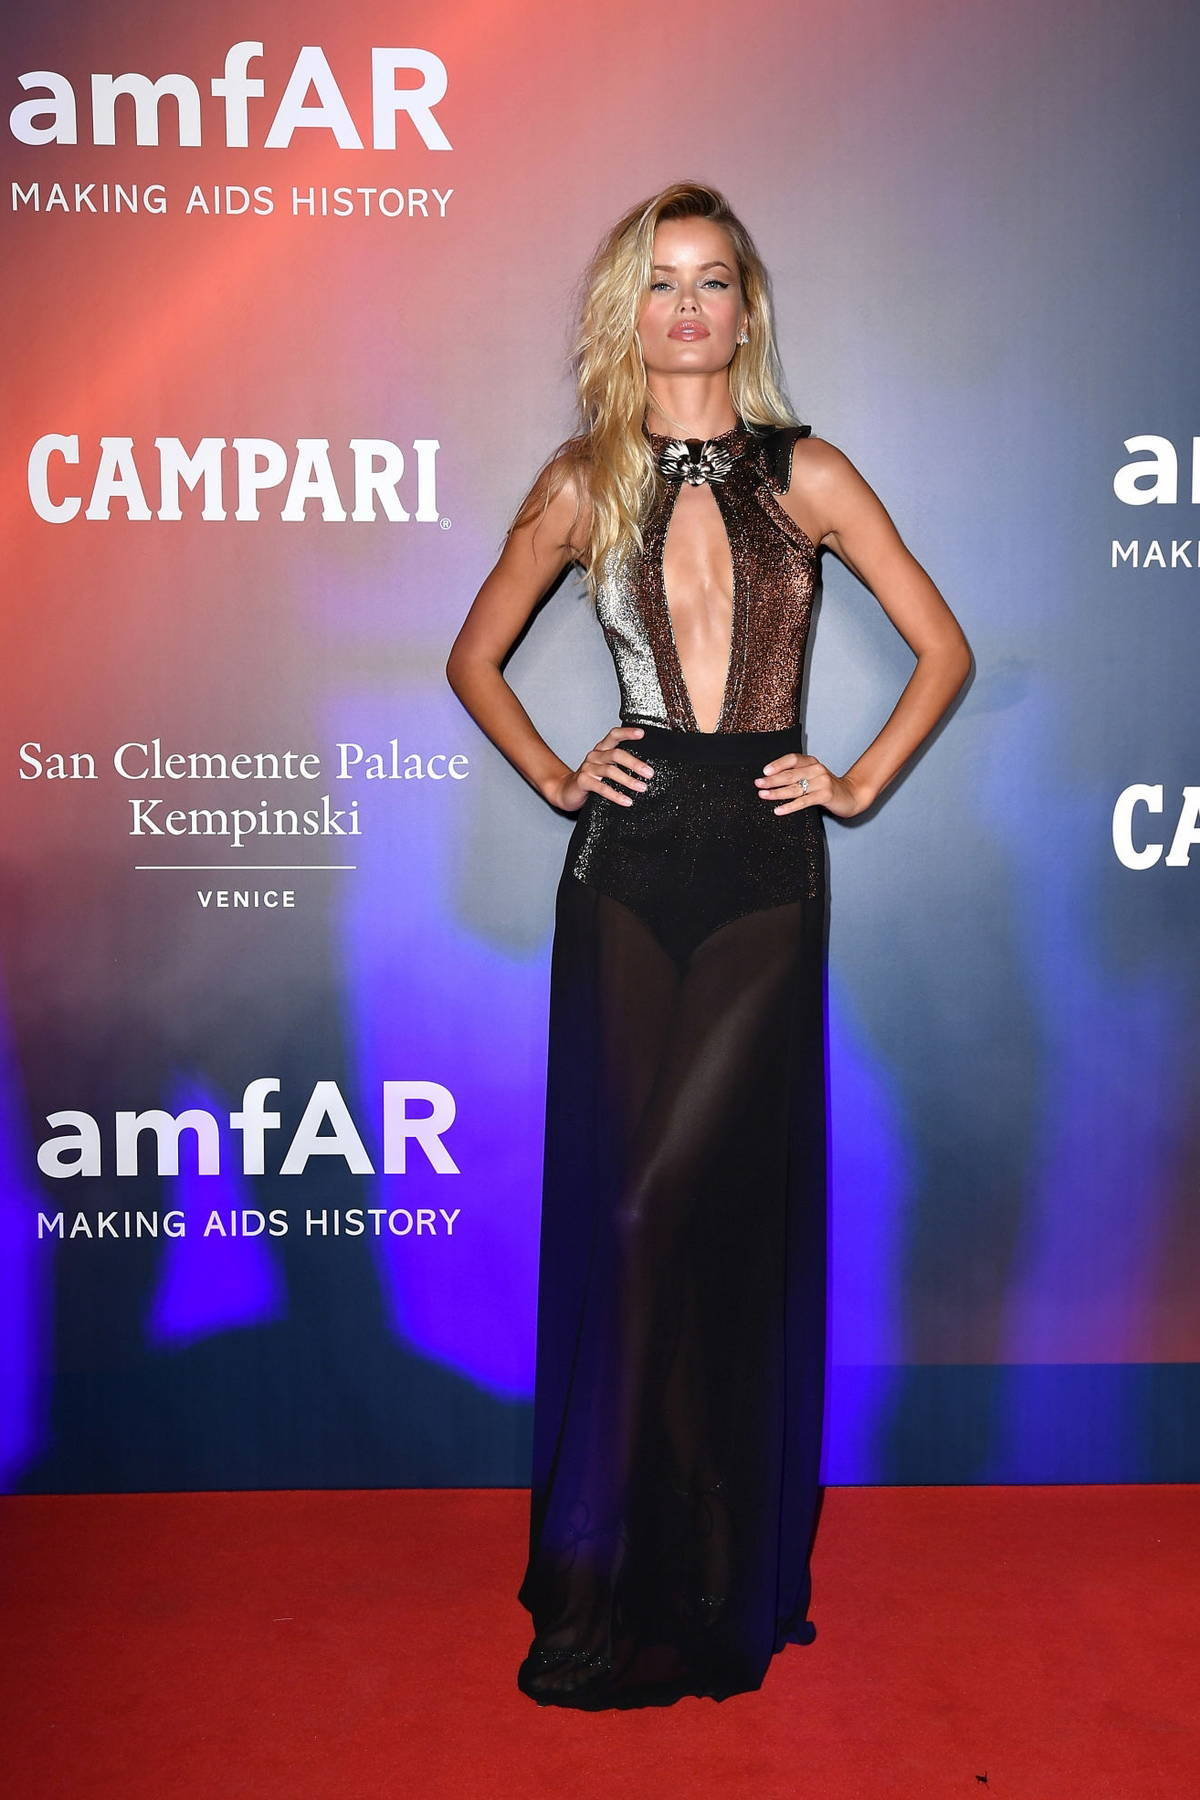 Frida Aasen attends the 2021 amfAR Gala during the 78th Venice International Film Festival in Venice, Italy